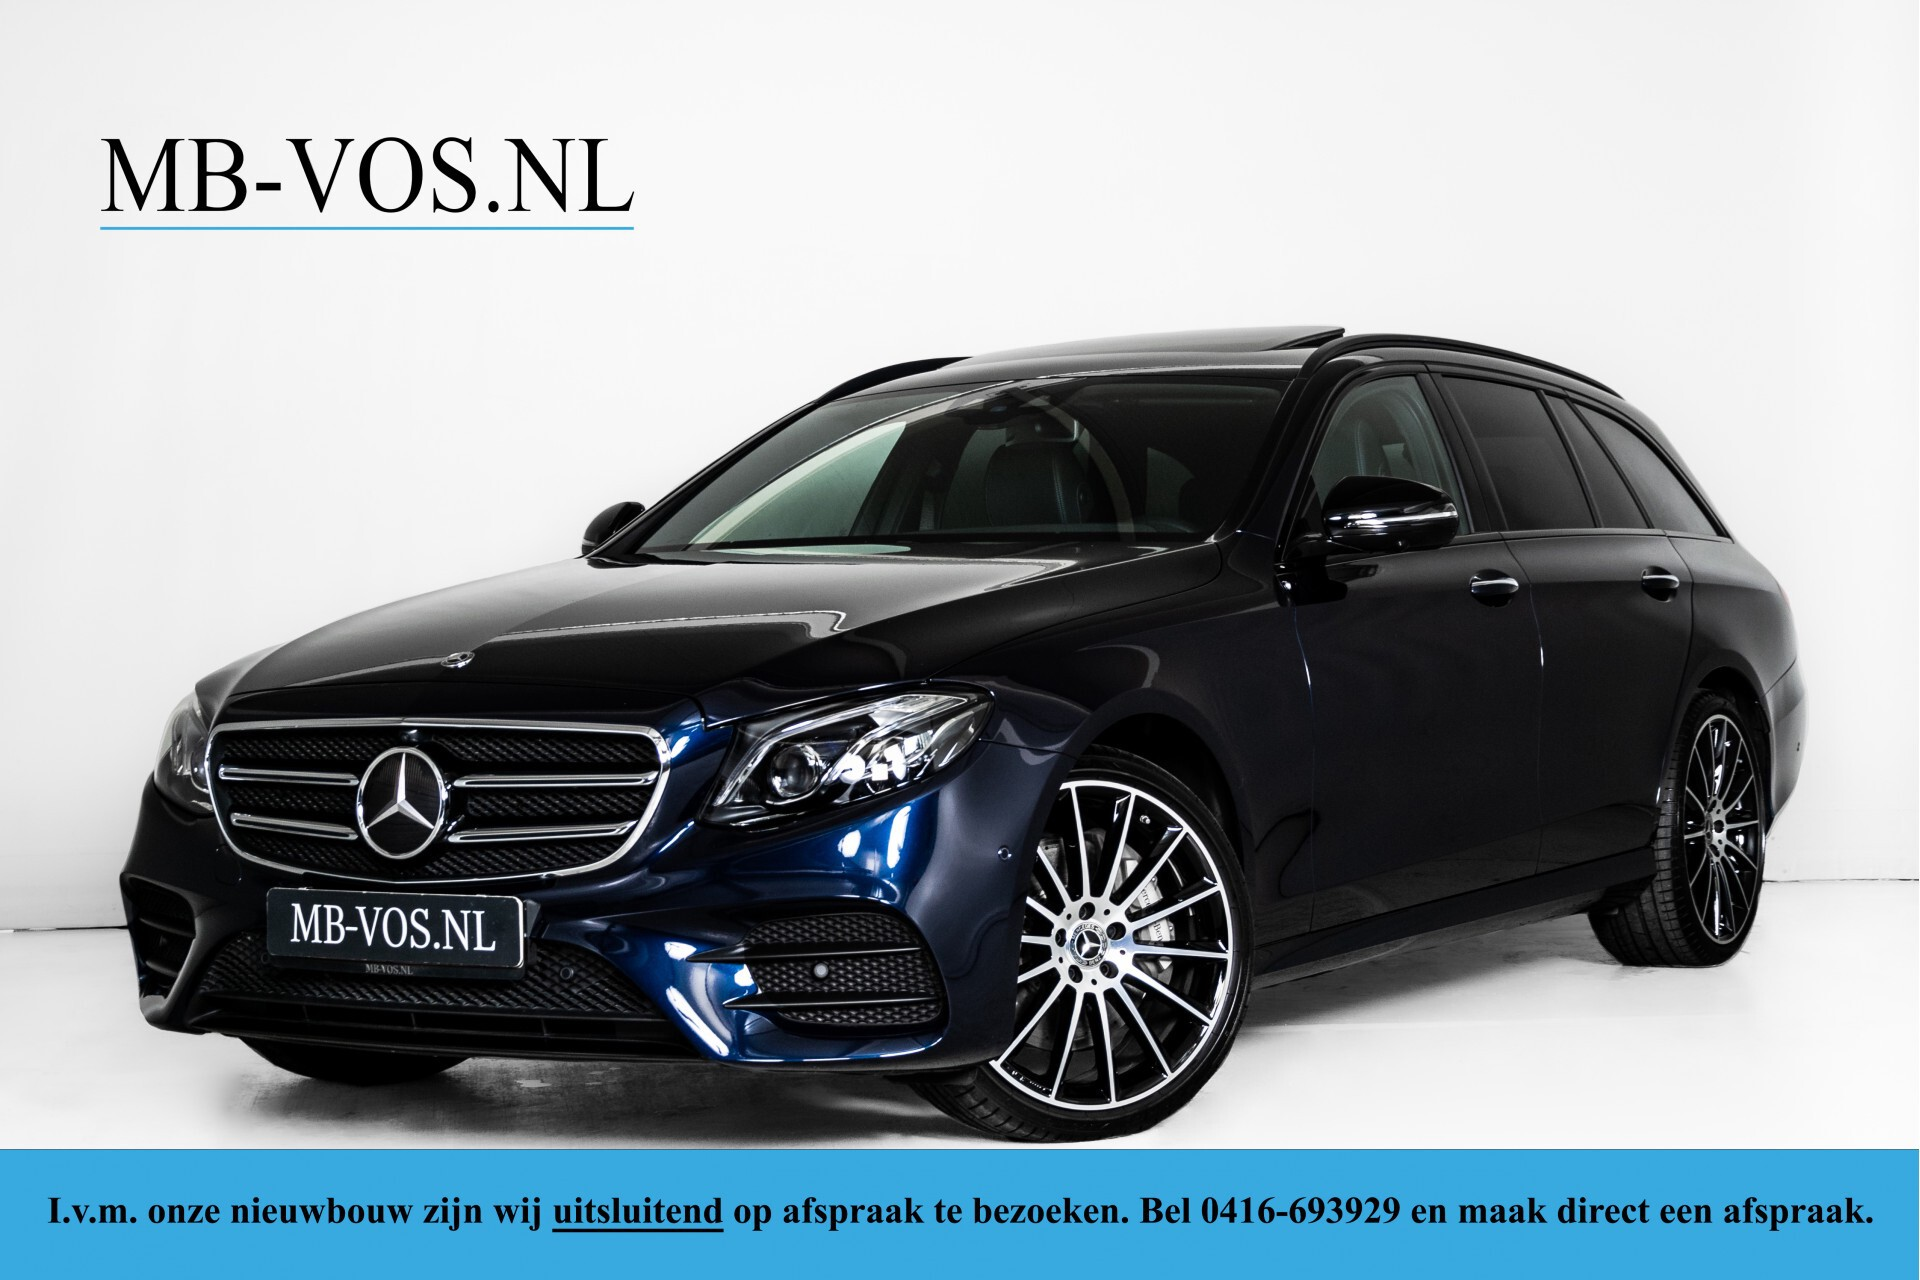 Mercedes-Benz E-Klasse Estate 450 4-M AMG Night Standkachel/Rij-assist/Keyless/Trhk/Burmester/Mem/360/Widescreen Aut9 Foto 1